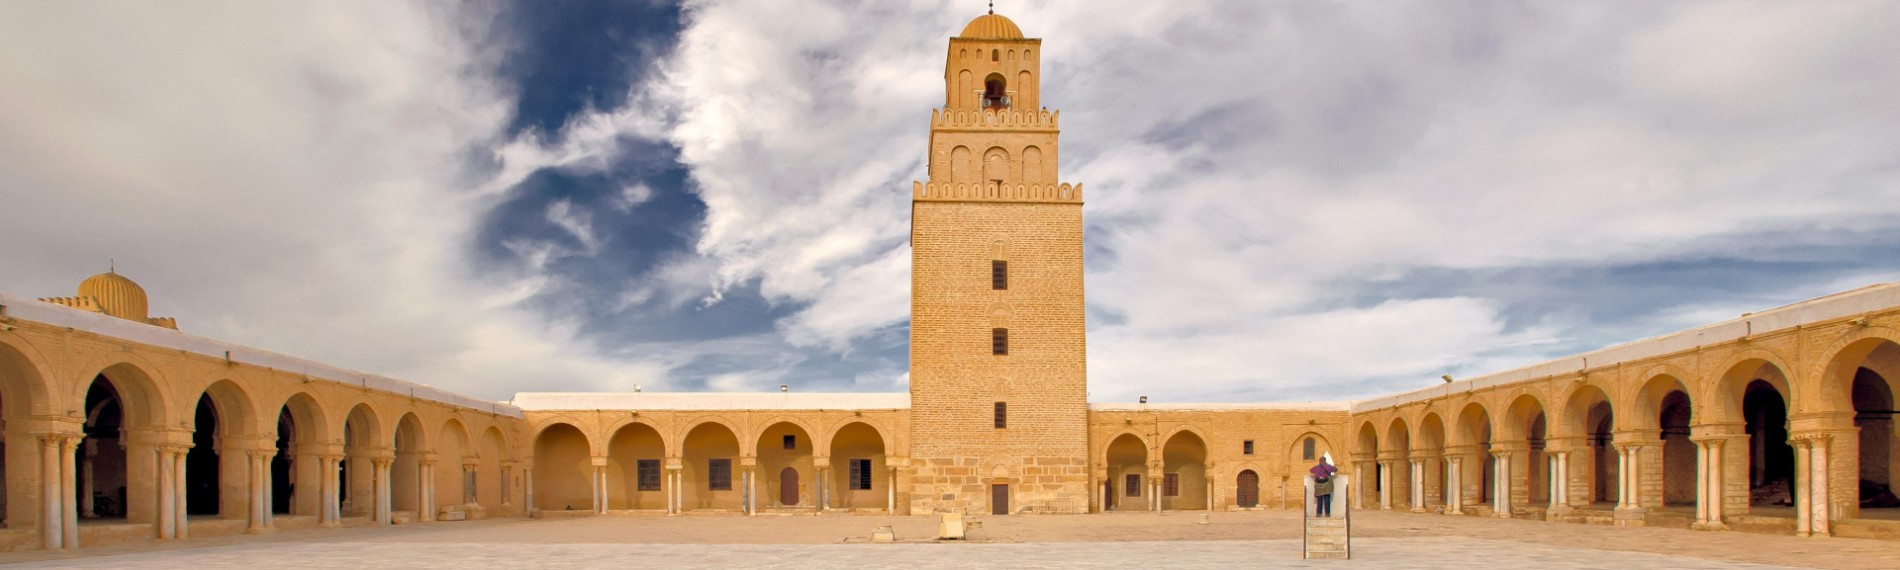 Tunisia Central Mosquee